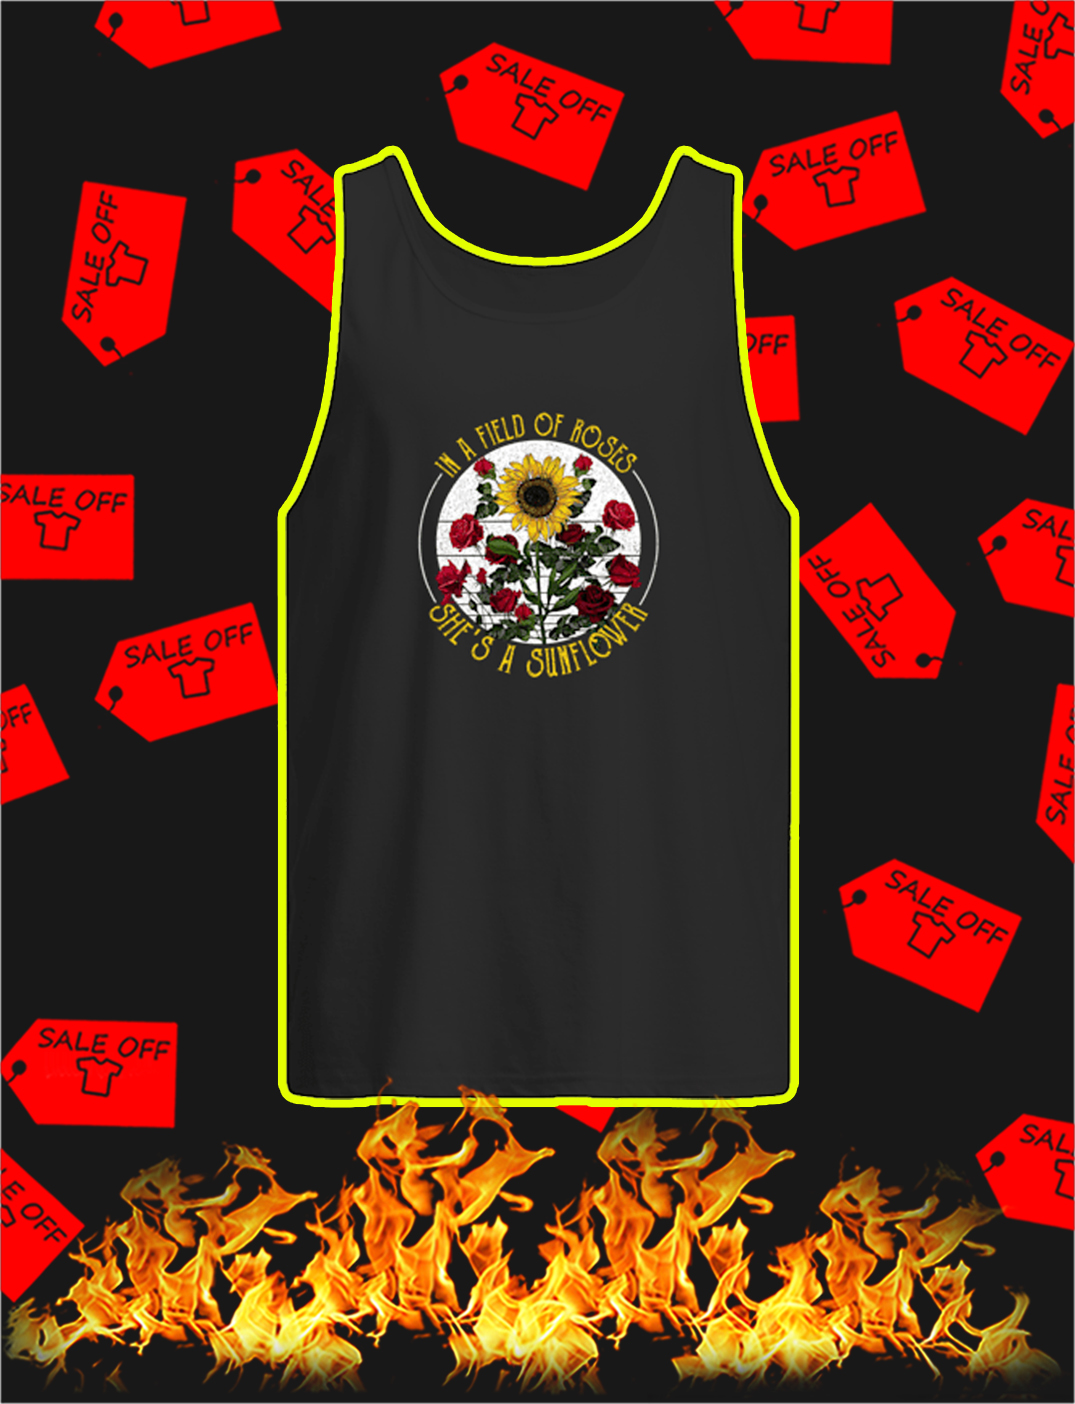 In A Field Of Roses She's A Sunflower tank top